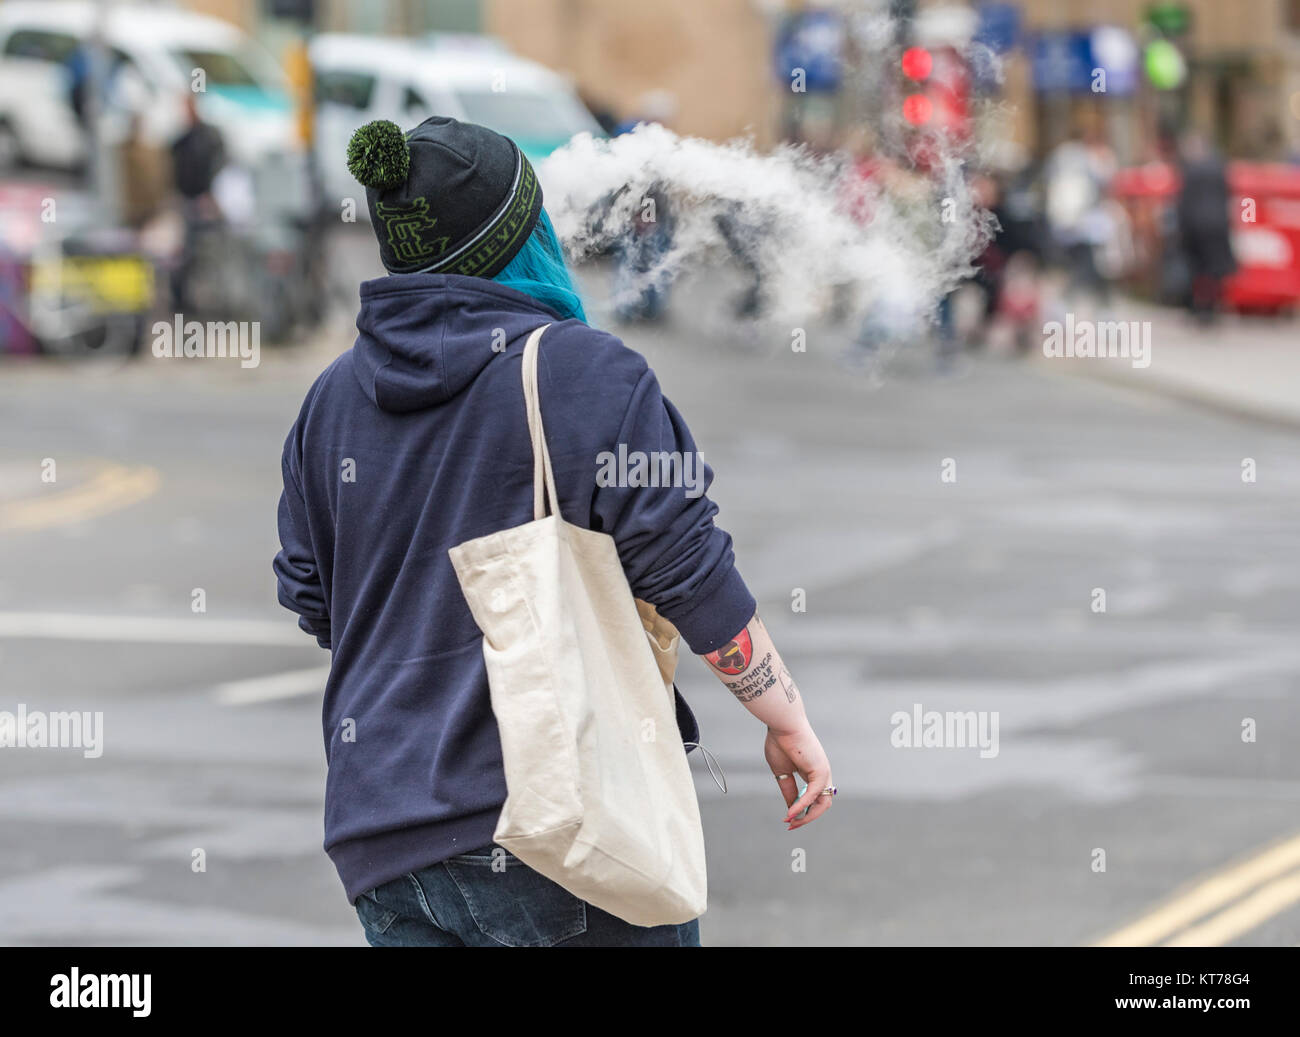 Woman walking away smoking an electronic cigarette, causing excessive smoke and polluting the atmosphere, in the - Stock Image